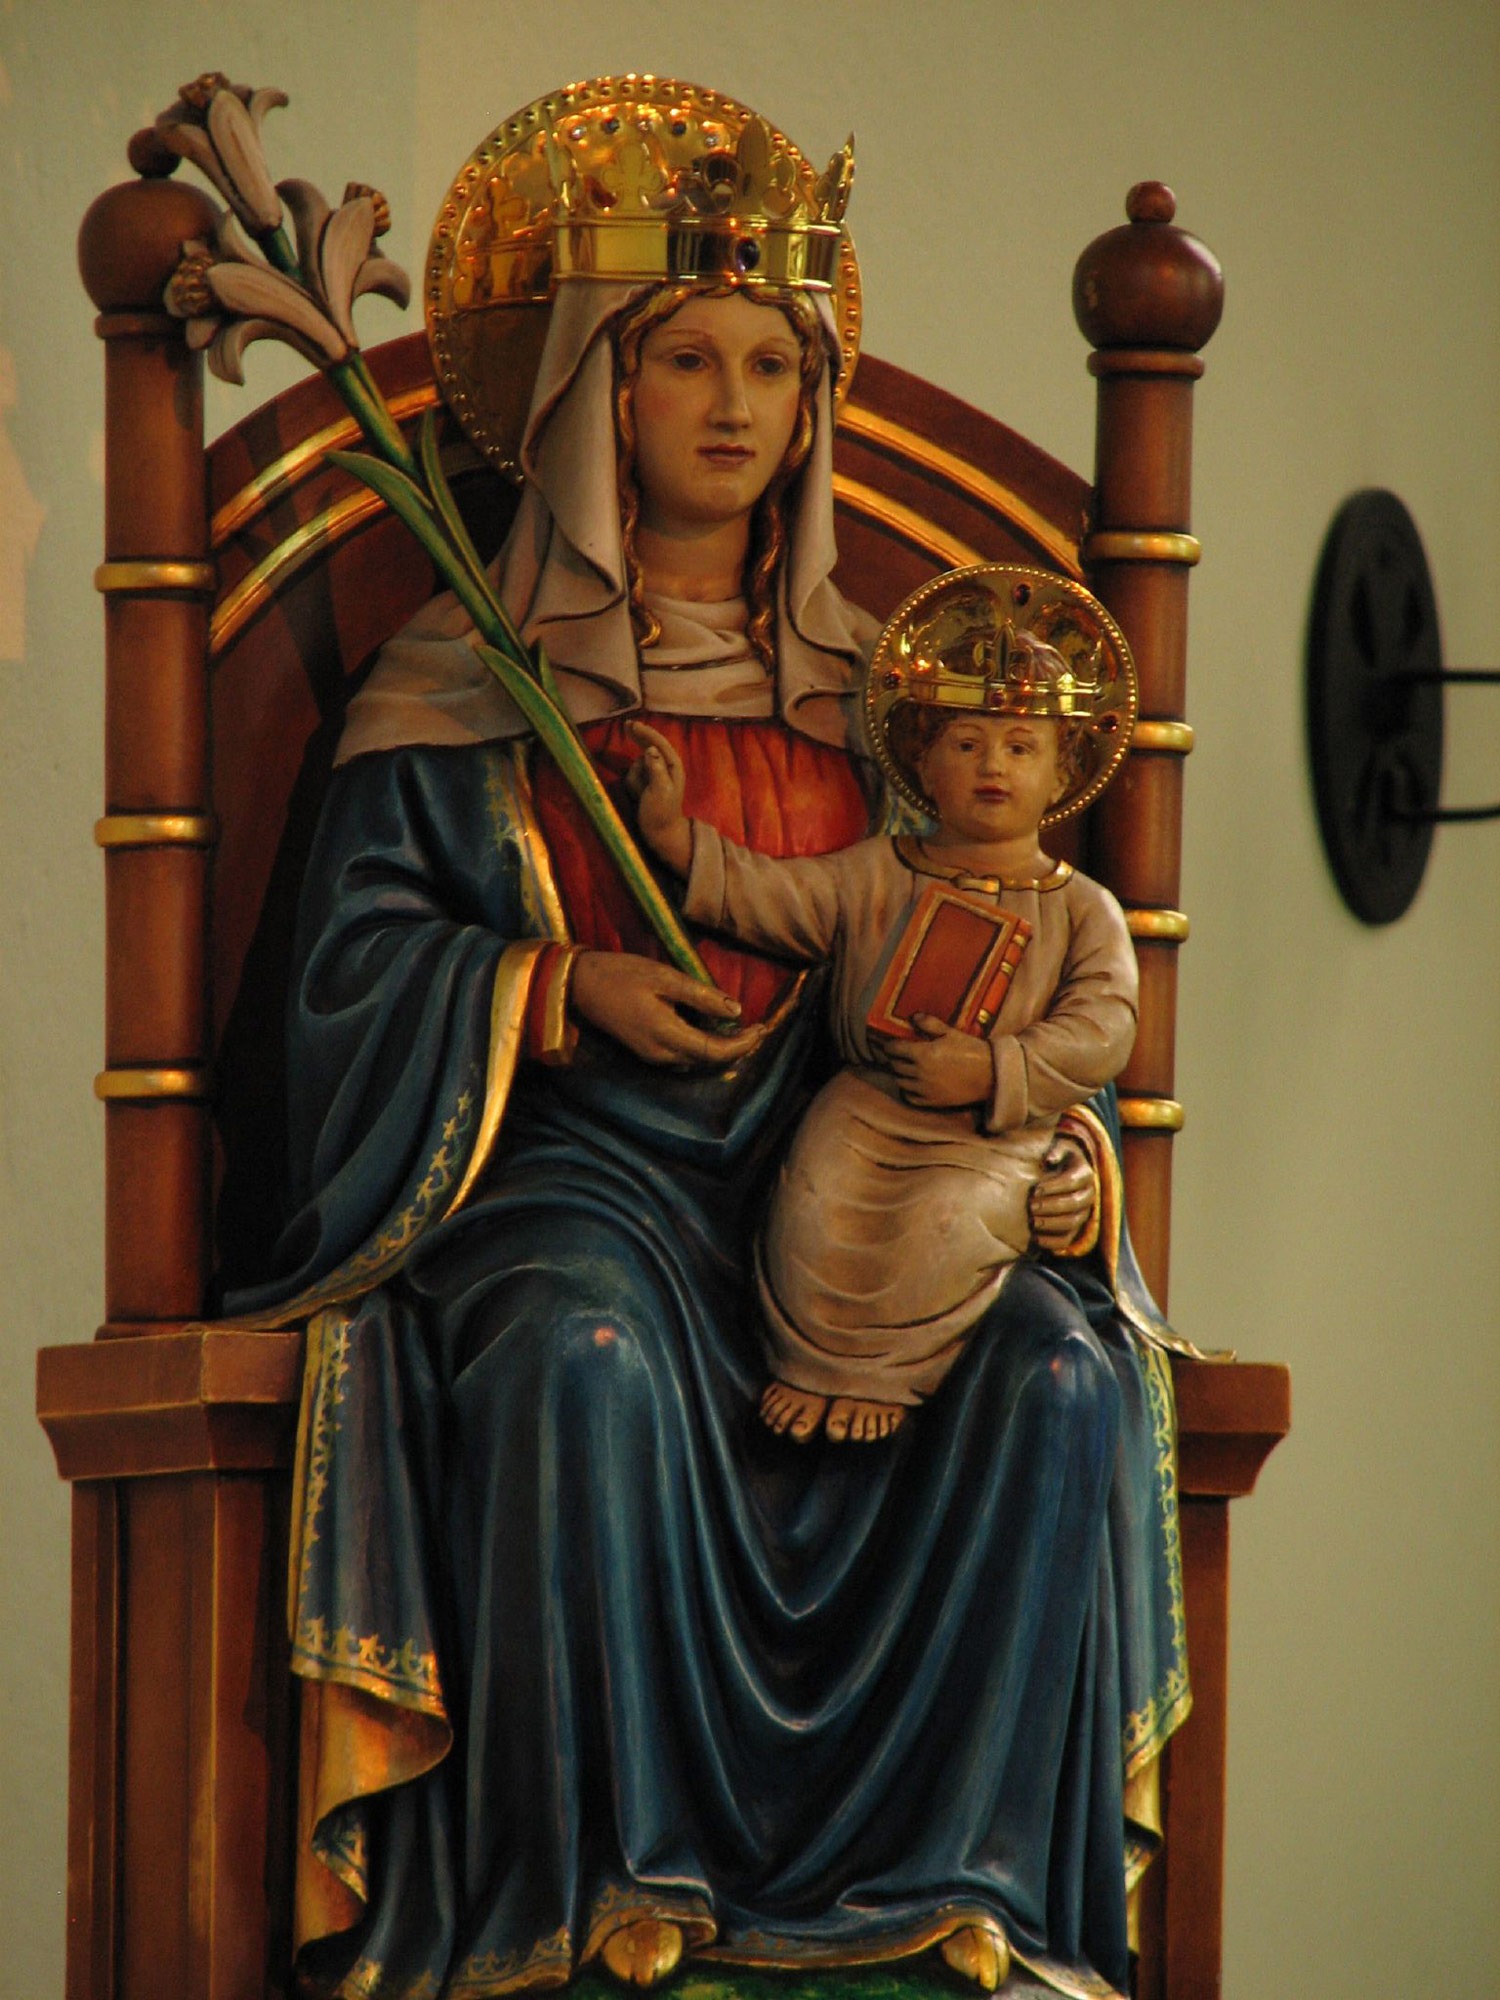 Photo:Our Lady, as she is venerated at Walsingham, is depicted as a simple woman, a mother. She is seated on the throne of Wisdom, in the midst of the Church which is represented by the two pillars symbolic of the Gate of Heaven, with seven rings to signify the seven sacraments and the seven gifts of the Holy Spirit.